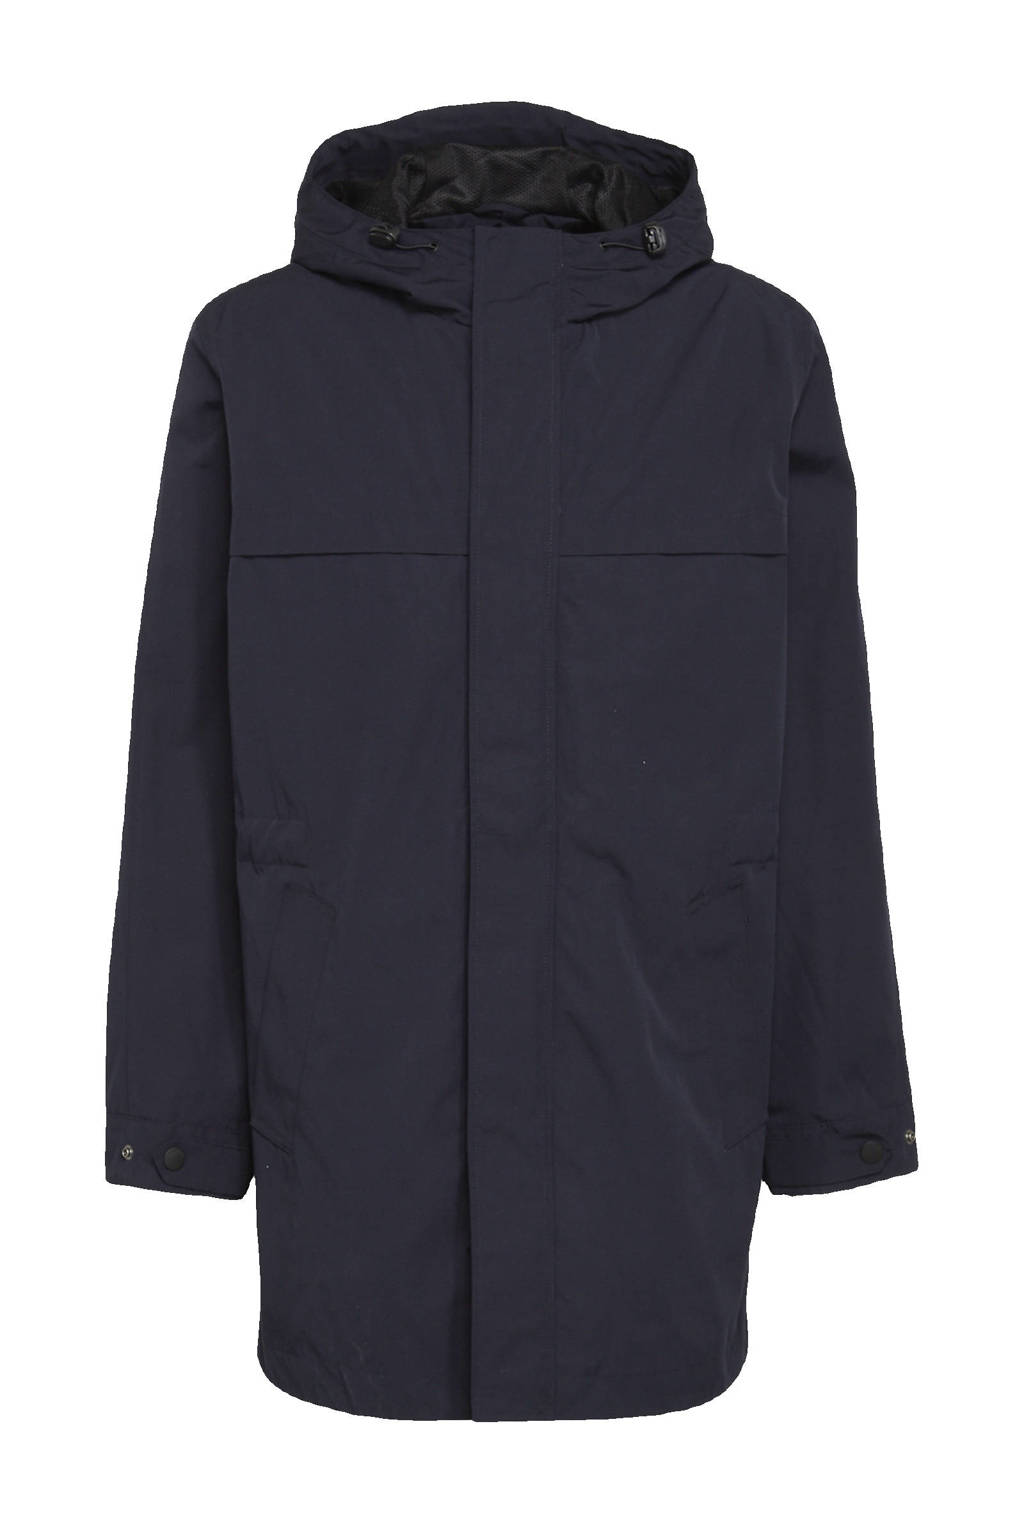 C&A Angelo Litrico parka donkerblauw, Donkerblauw